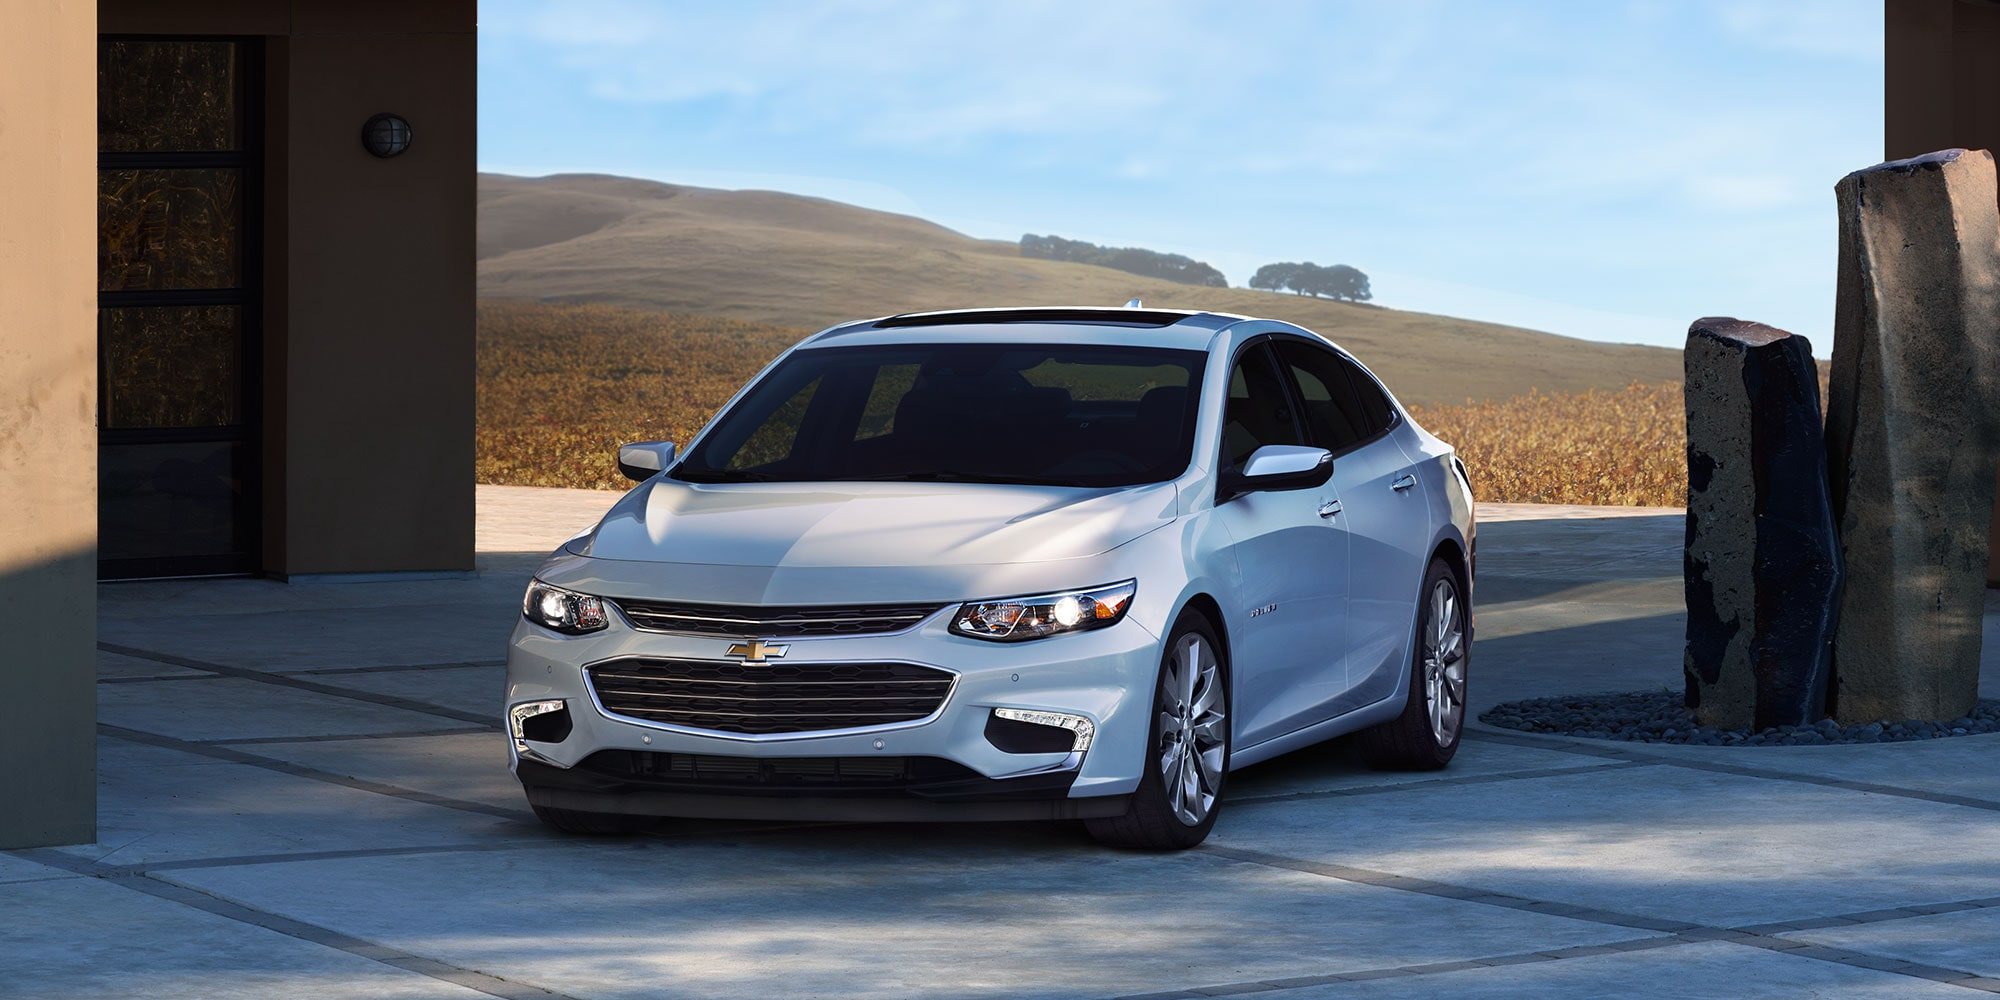 Exterior design of the 2017 Chevrolet malibu in Roseville